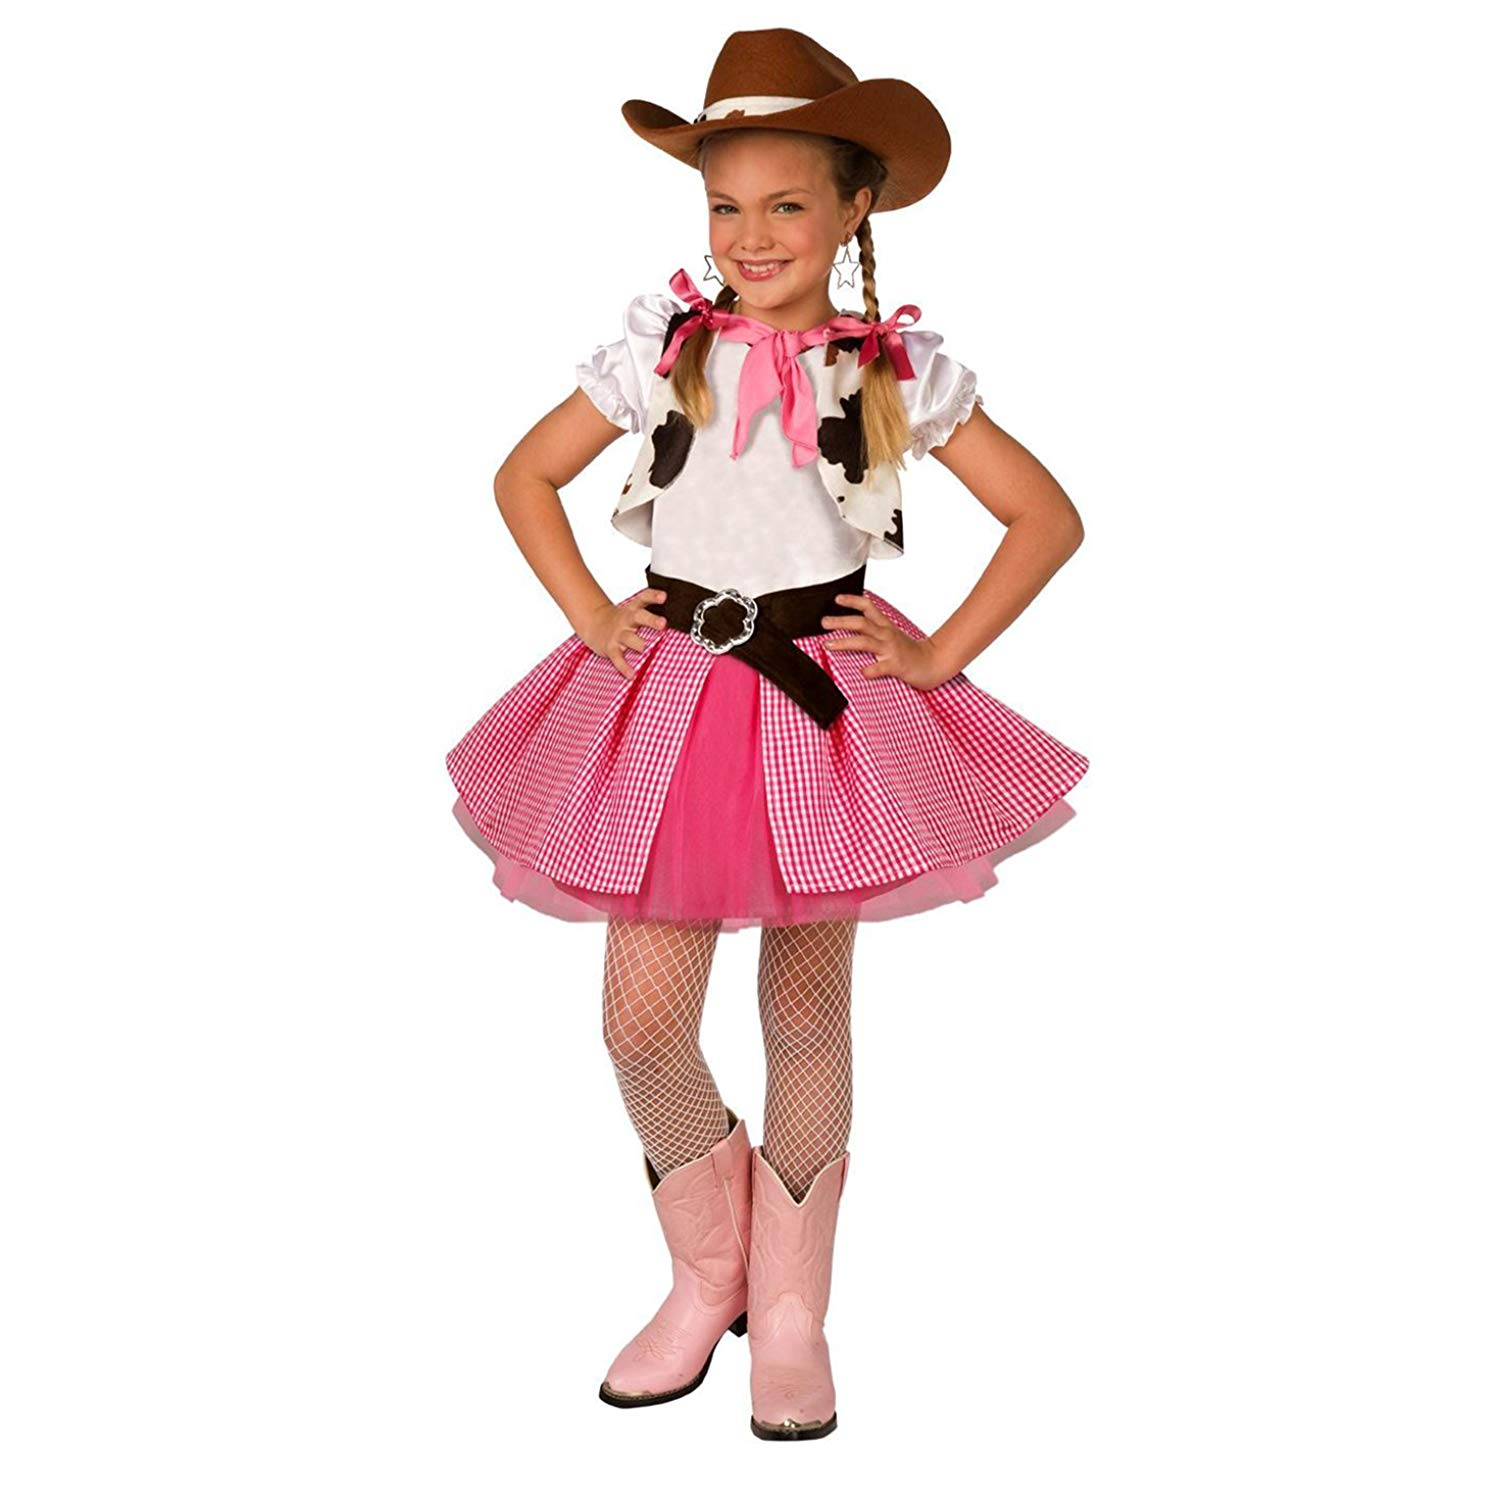 bd62640fd42c Get Quotations · Morph Girls Cowgirl Costume Cute Kids Pink Western Dress  Quality Outfit for Children